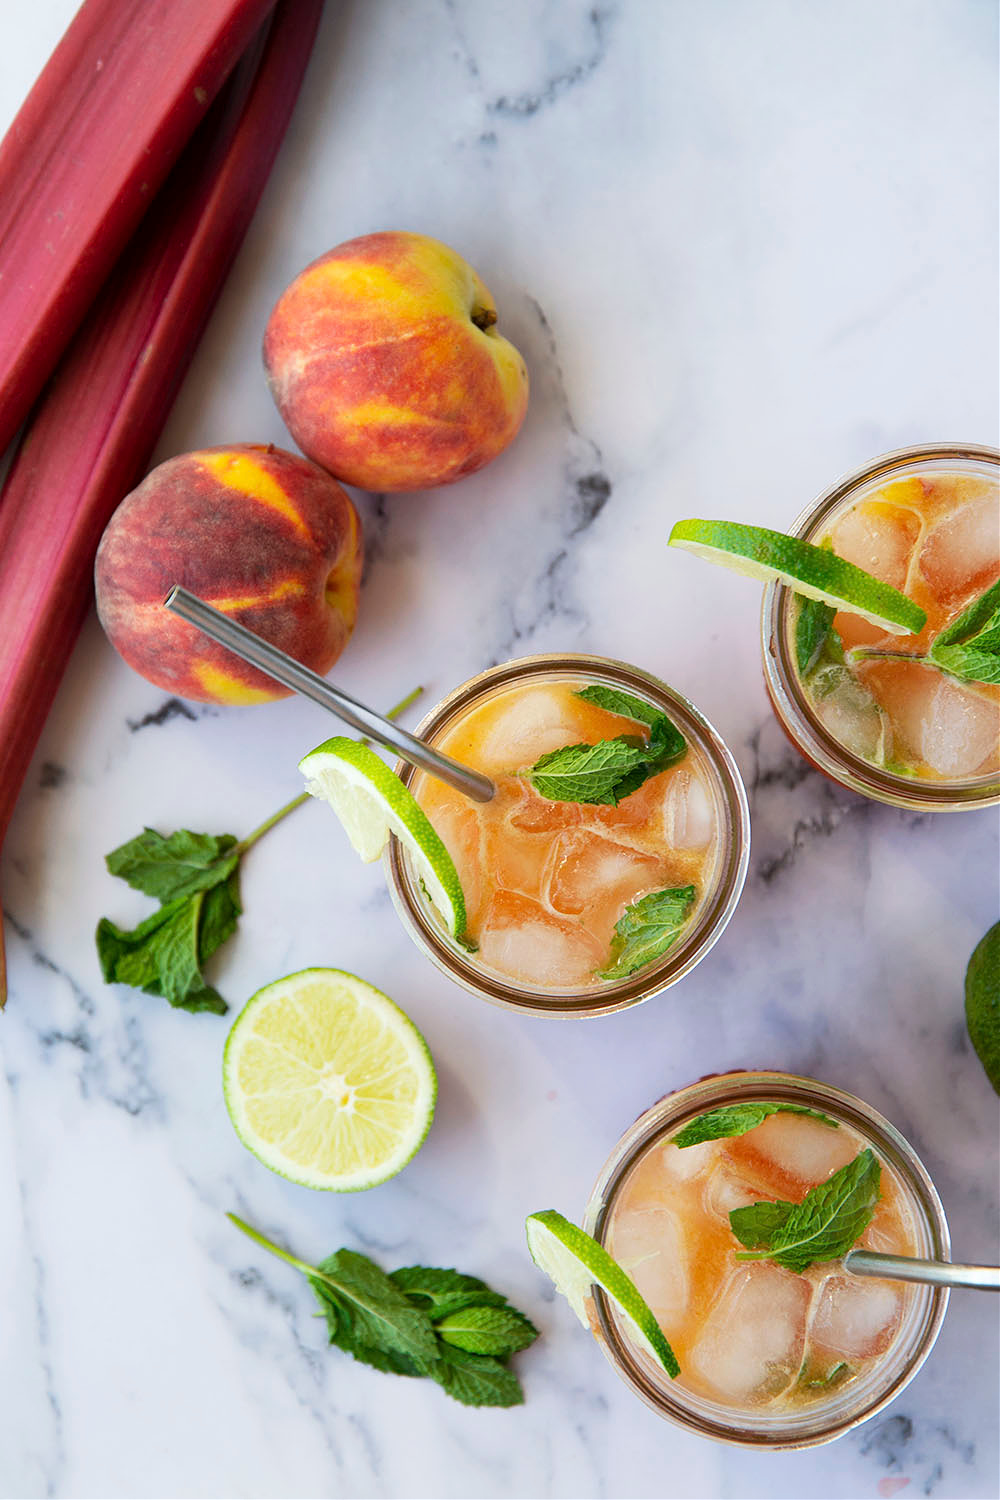 Rhubarb peach bourbon smash is a refreshing summer cocktail with juicy peaches, firey bourbon, and a tangy homemade rhubarb syrup.